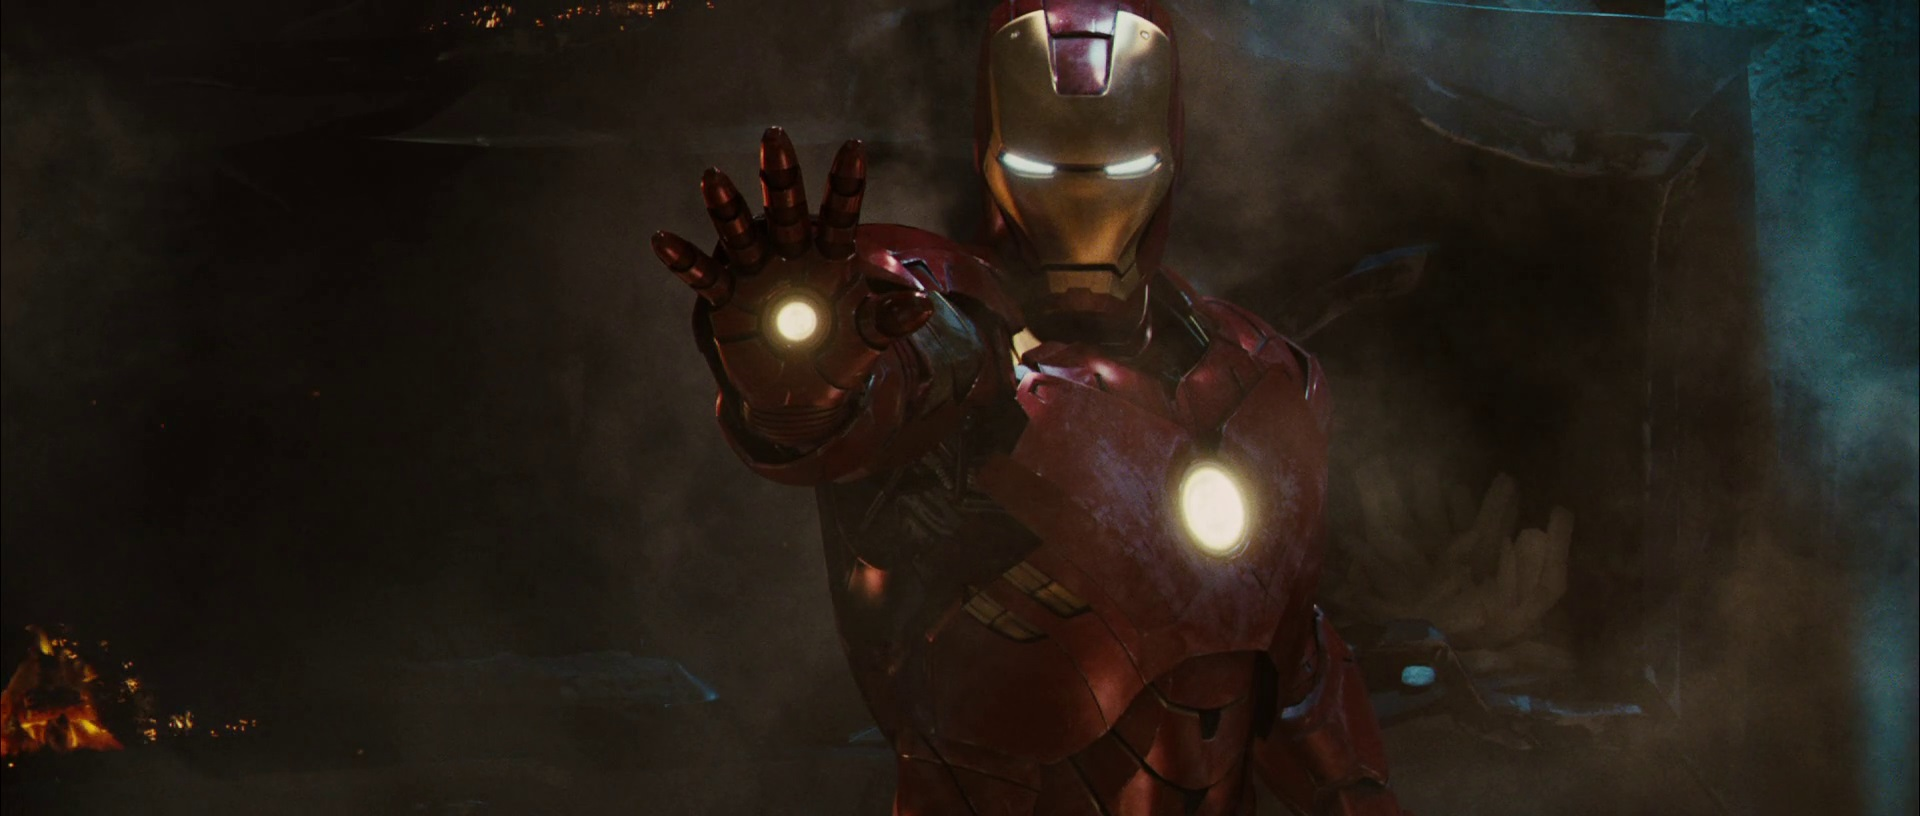 File:Iron man 2-markIV-shot.jpg